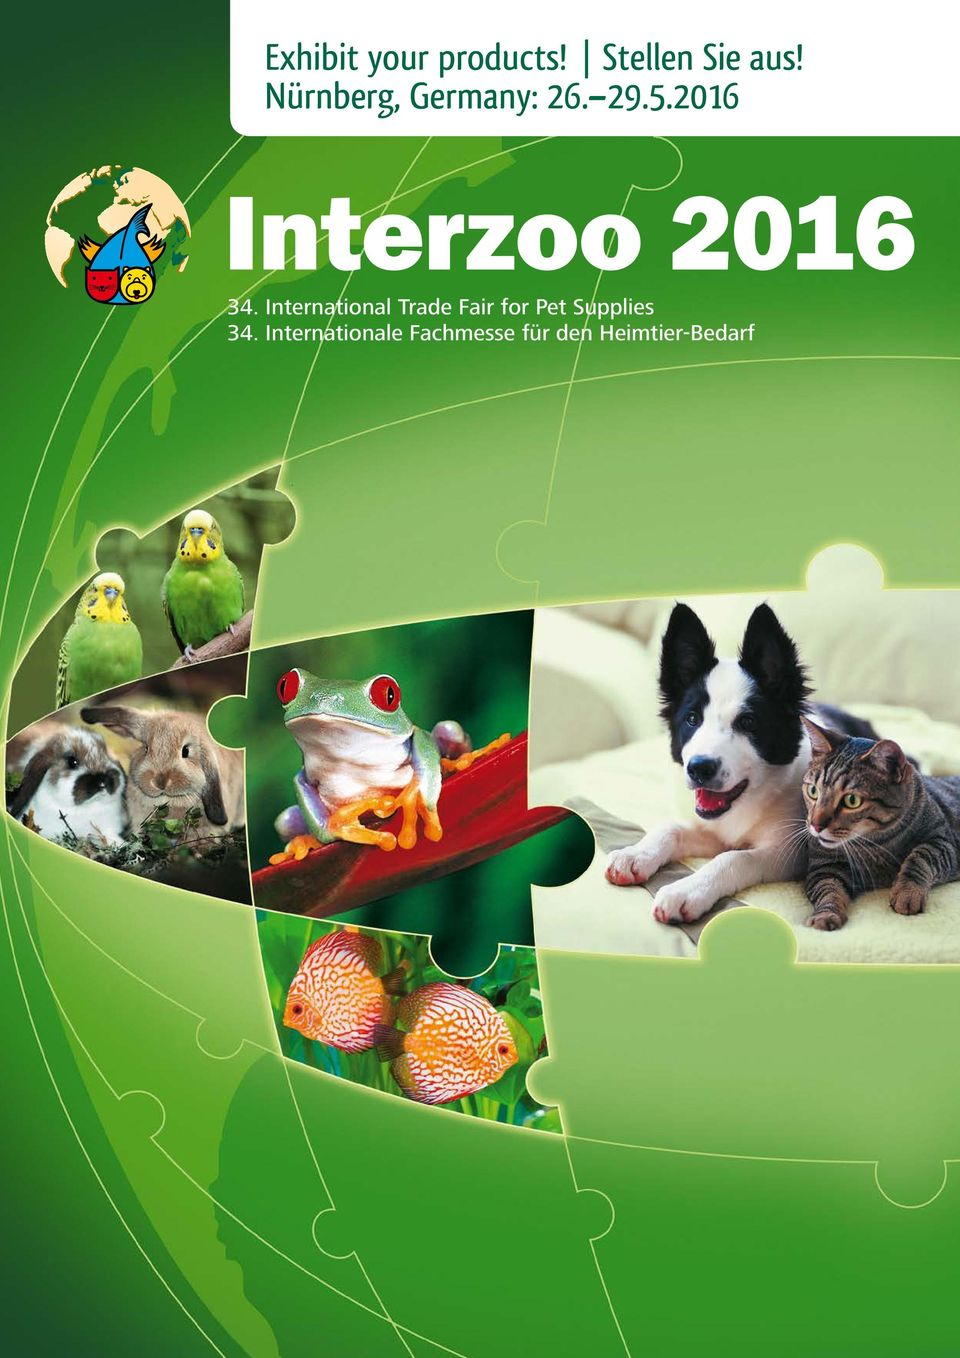 International Trade Fair for Pet Supplies